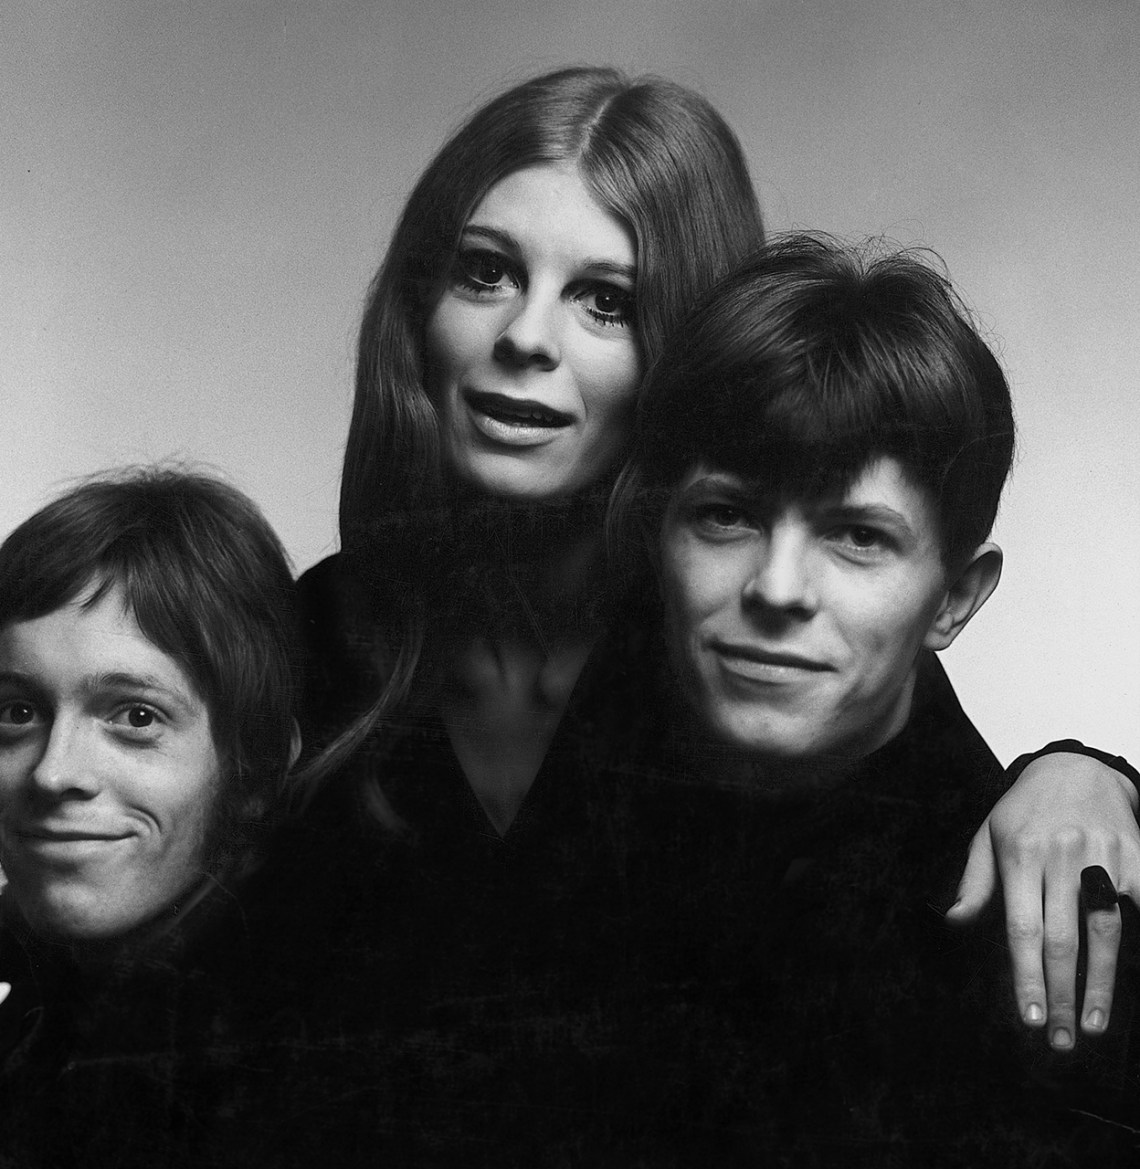 Bowie-young-with-Band.jpg